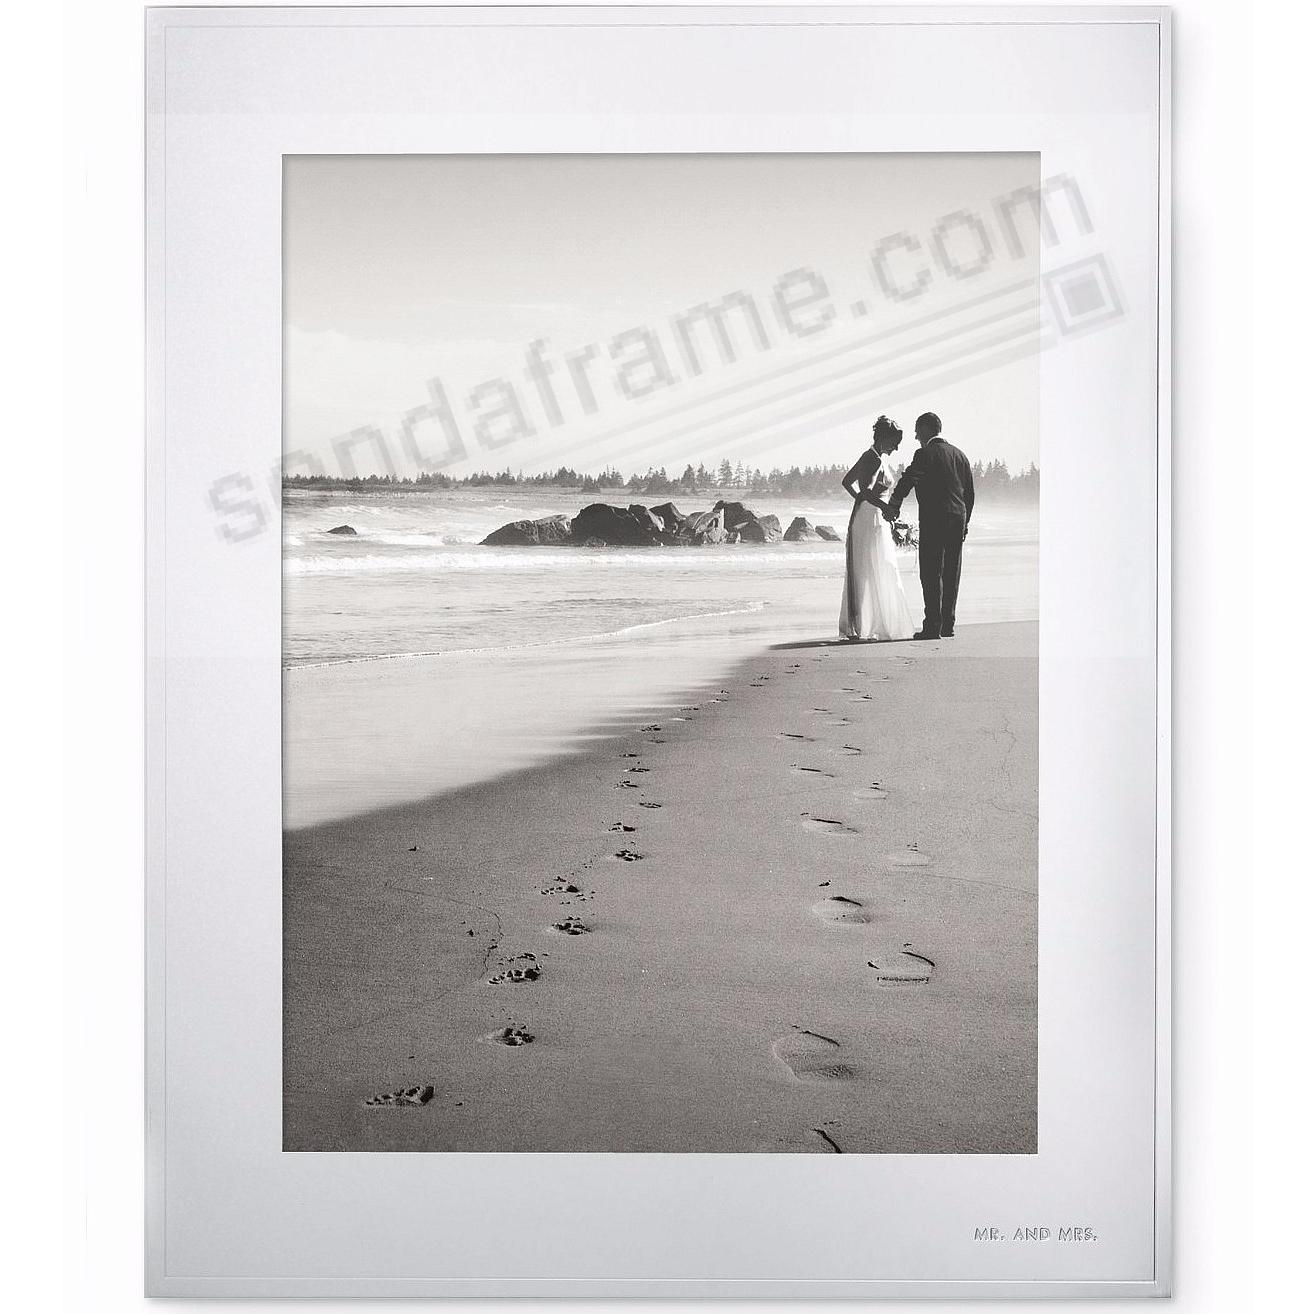 DARLING POINT MR. AND MRS. frame for 8x10 prints by kate spade new york®